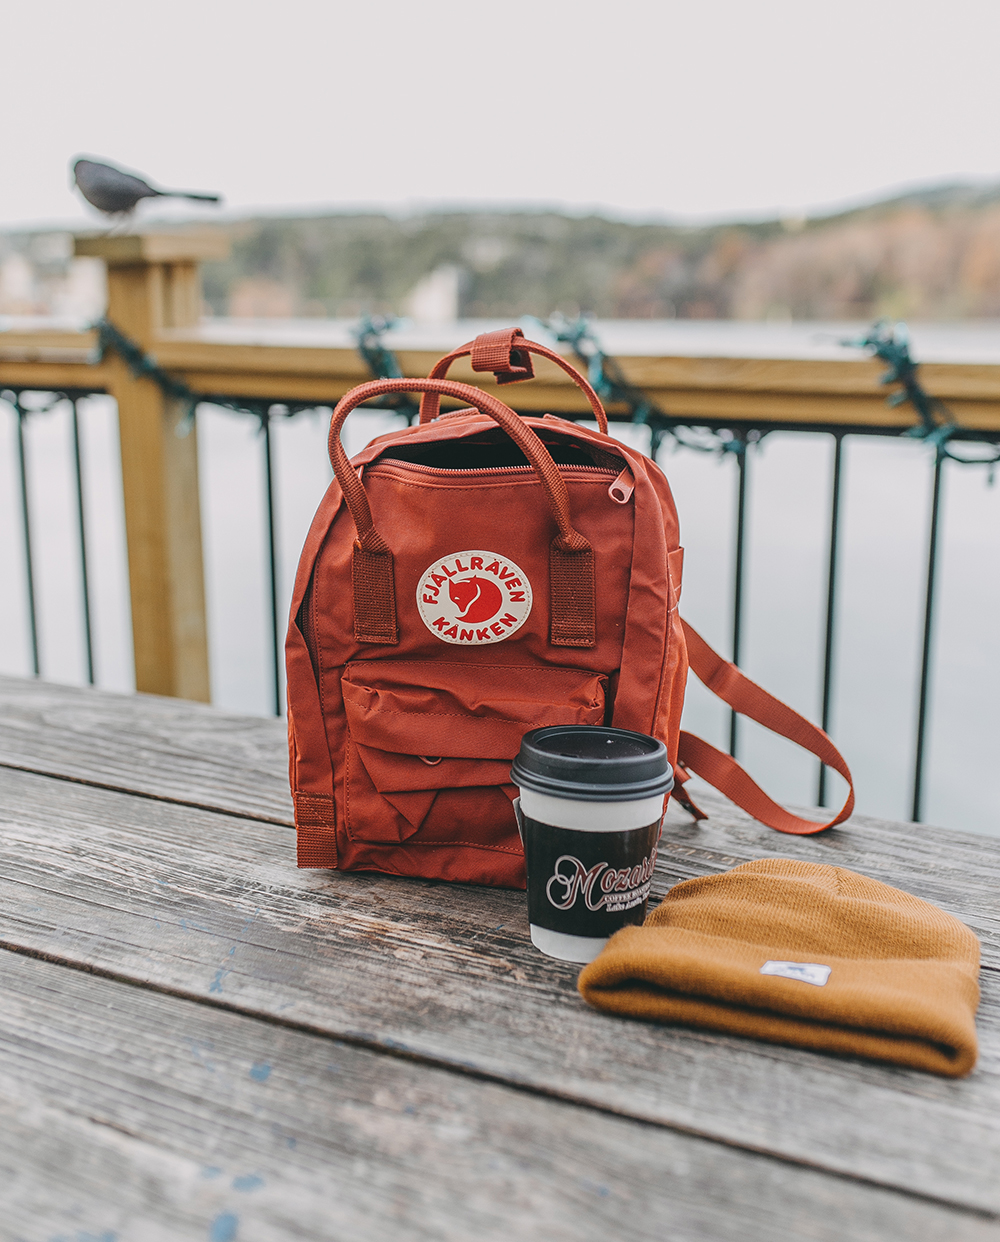 livvyland-blog-olivia-watson-austin-texas-lifestyle-motherhood-blogger-mozarts-coffee-fjallraven-kanken-terracotta-mini-backpack-1